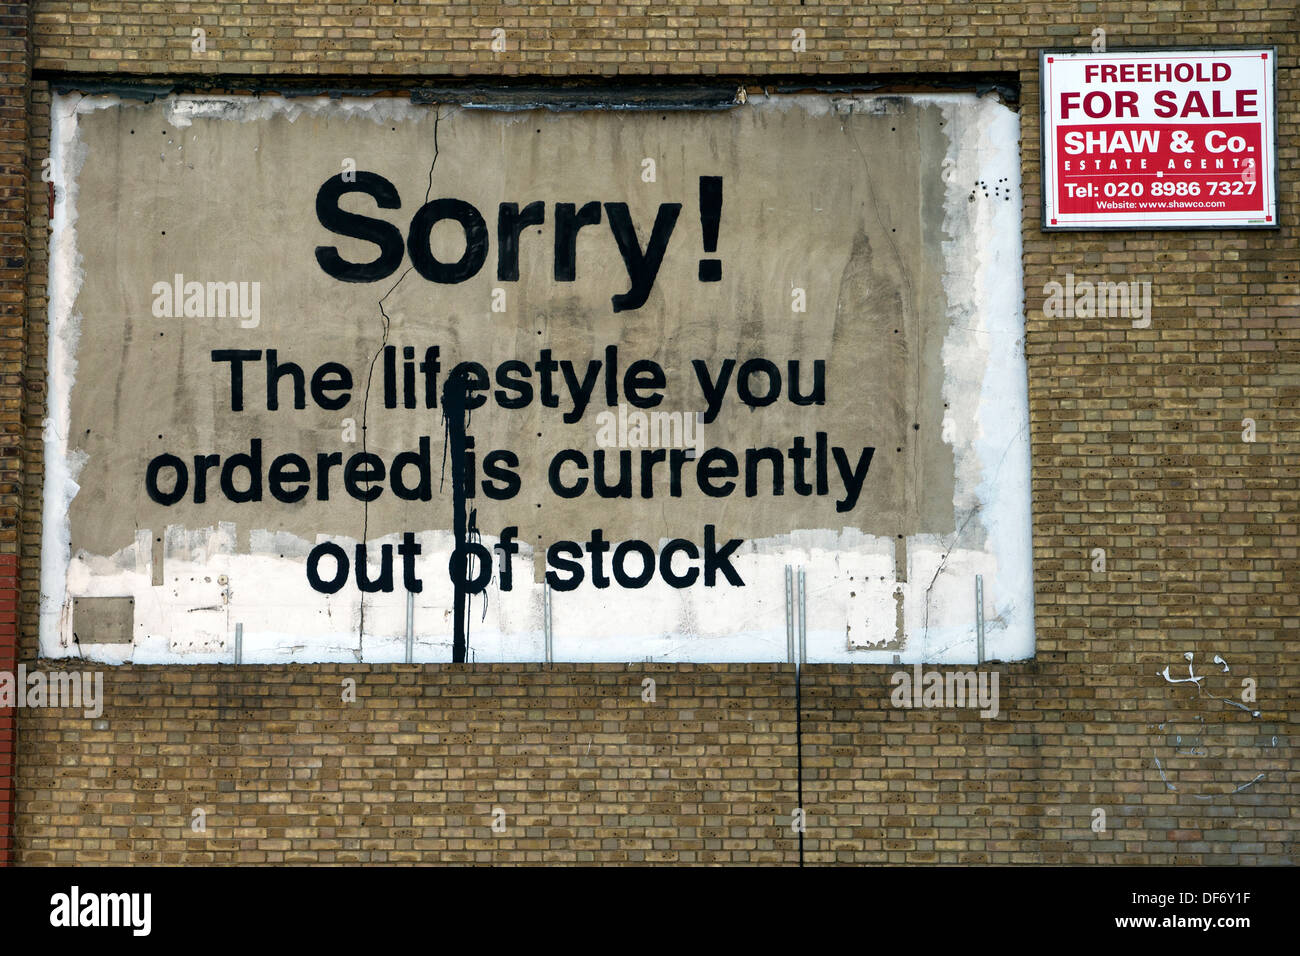 'Sorry the lifestyle that you have ordered is out of stock' street art by Banksy, East India Dock Road, London, UK. - Stock Image